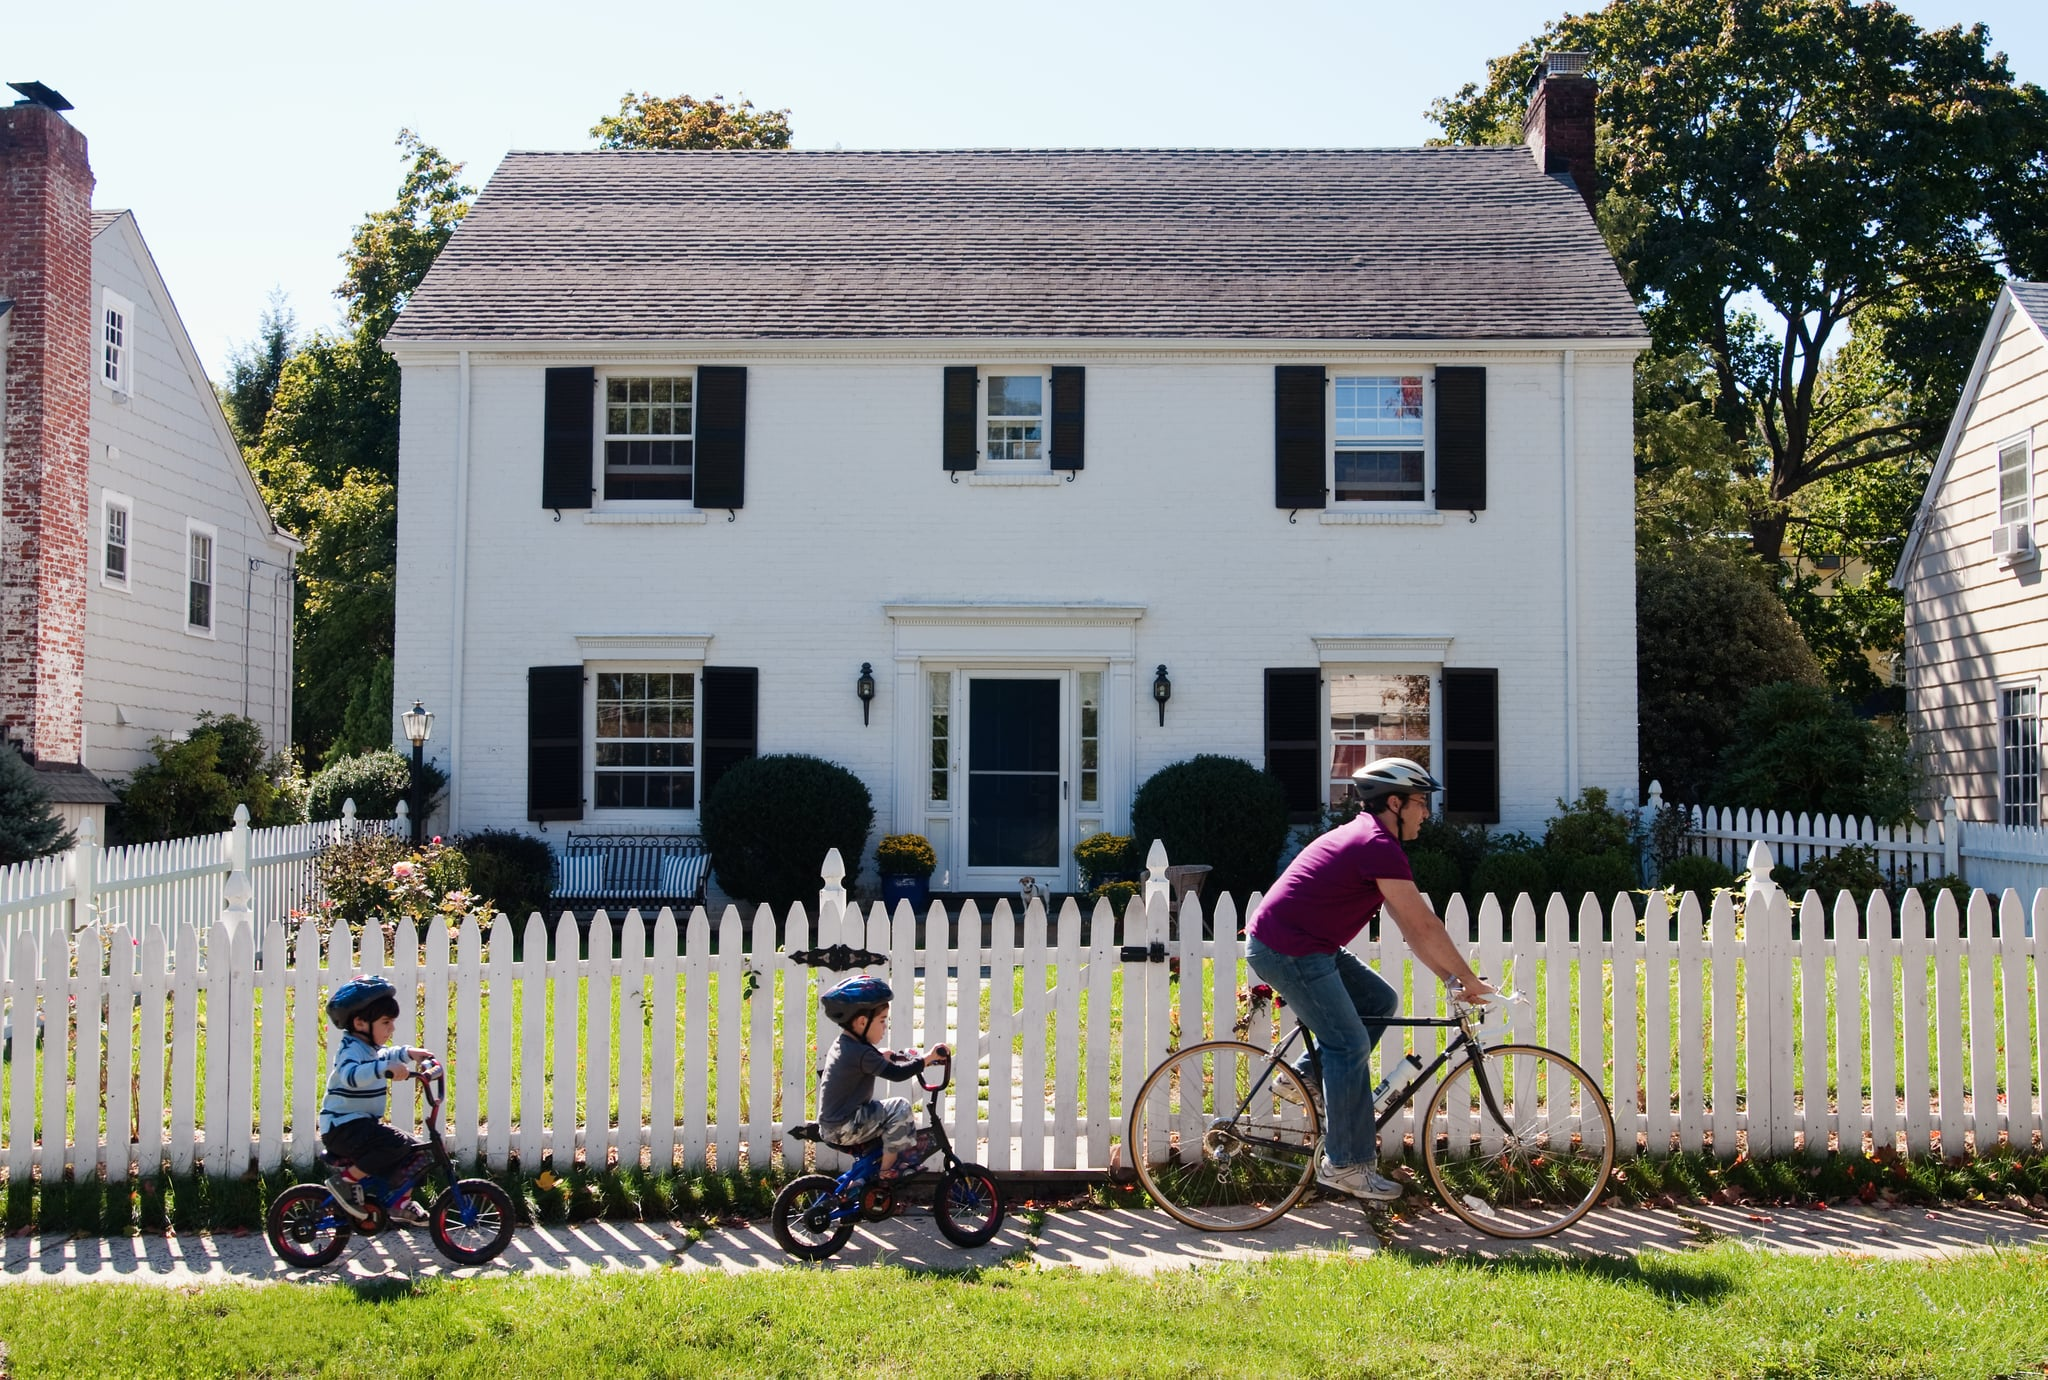 Father and twin 4-year-old sons riding bicycles in front of suburban home